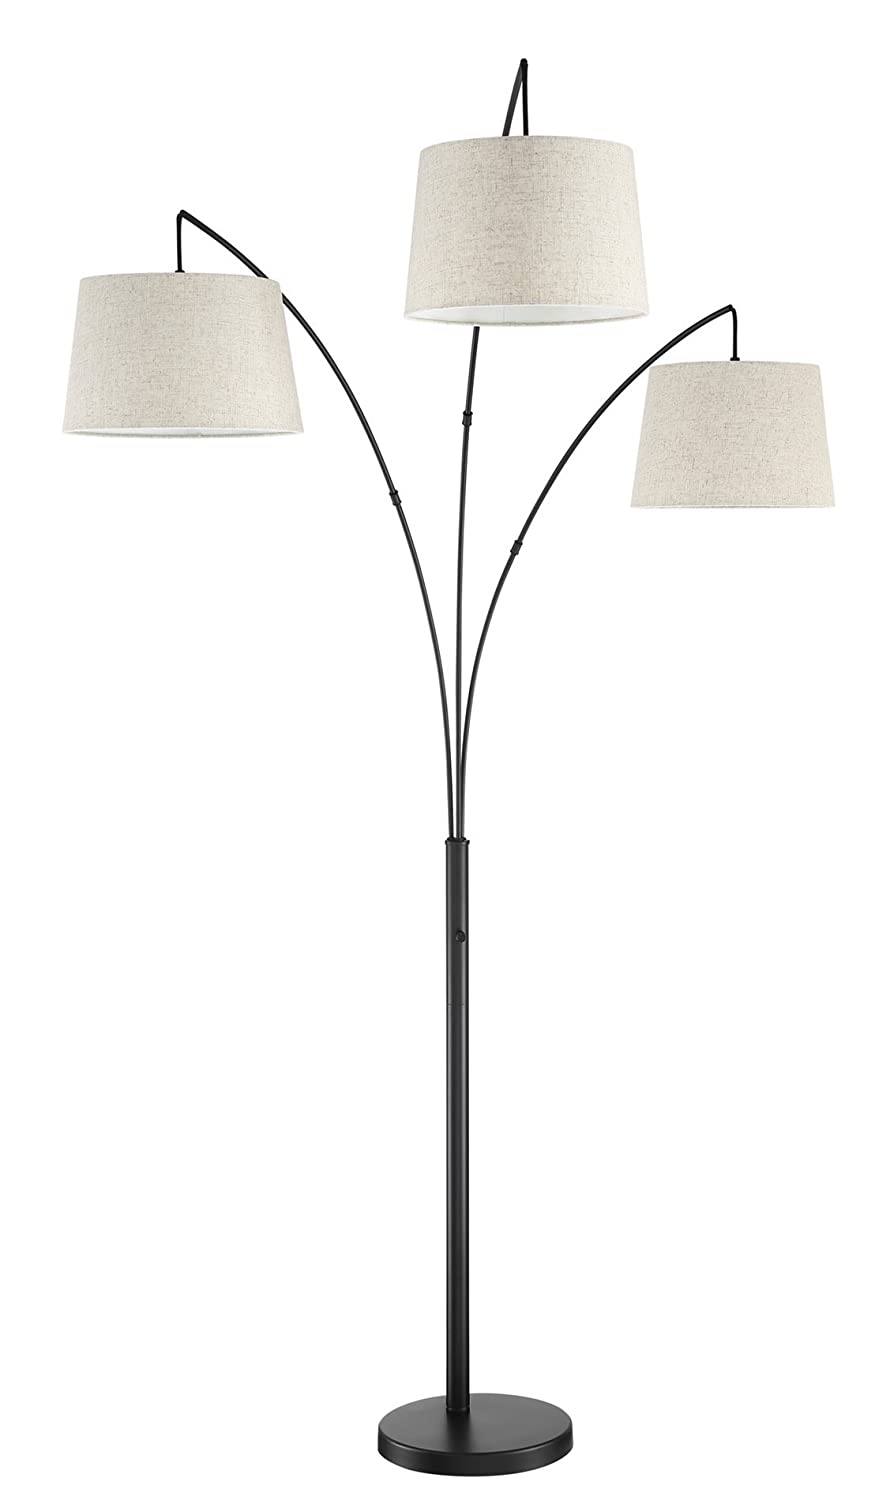 Kira Home Akira 78.5' Modern 3-Light Arc Floor Lamp with 4-Way Switch, Oatmeal Shades + Oil Rubbed Bronze Finish